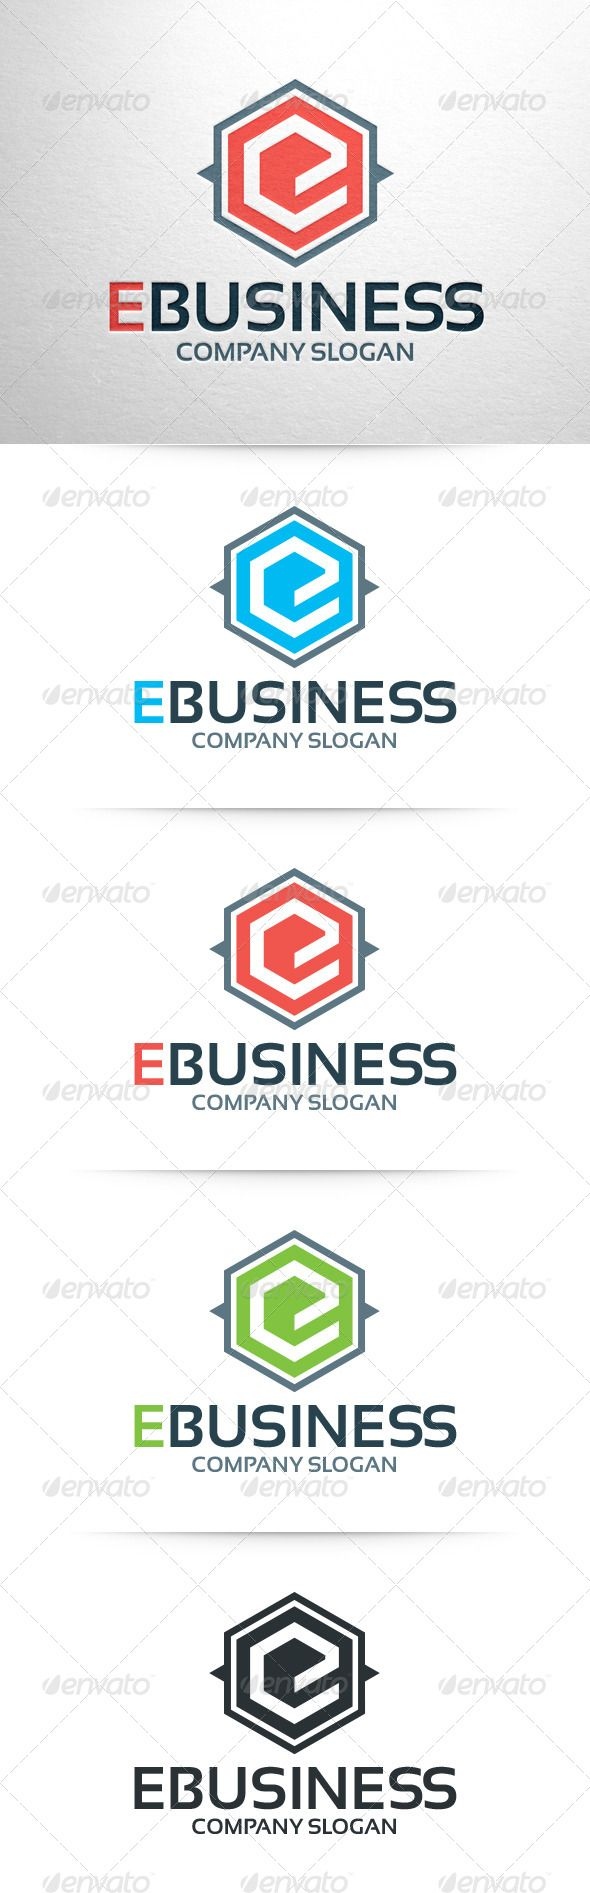 E business letter e logo template business letter logo buy e business letter e logo template by liveatthebbq on graphicriver the e business logo template a strong letter e logo template for your company thecheapjerseys Gallery